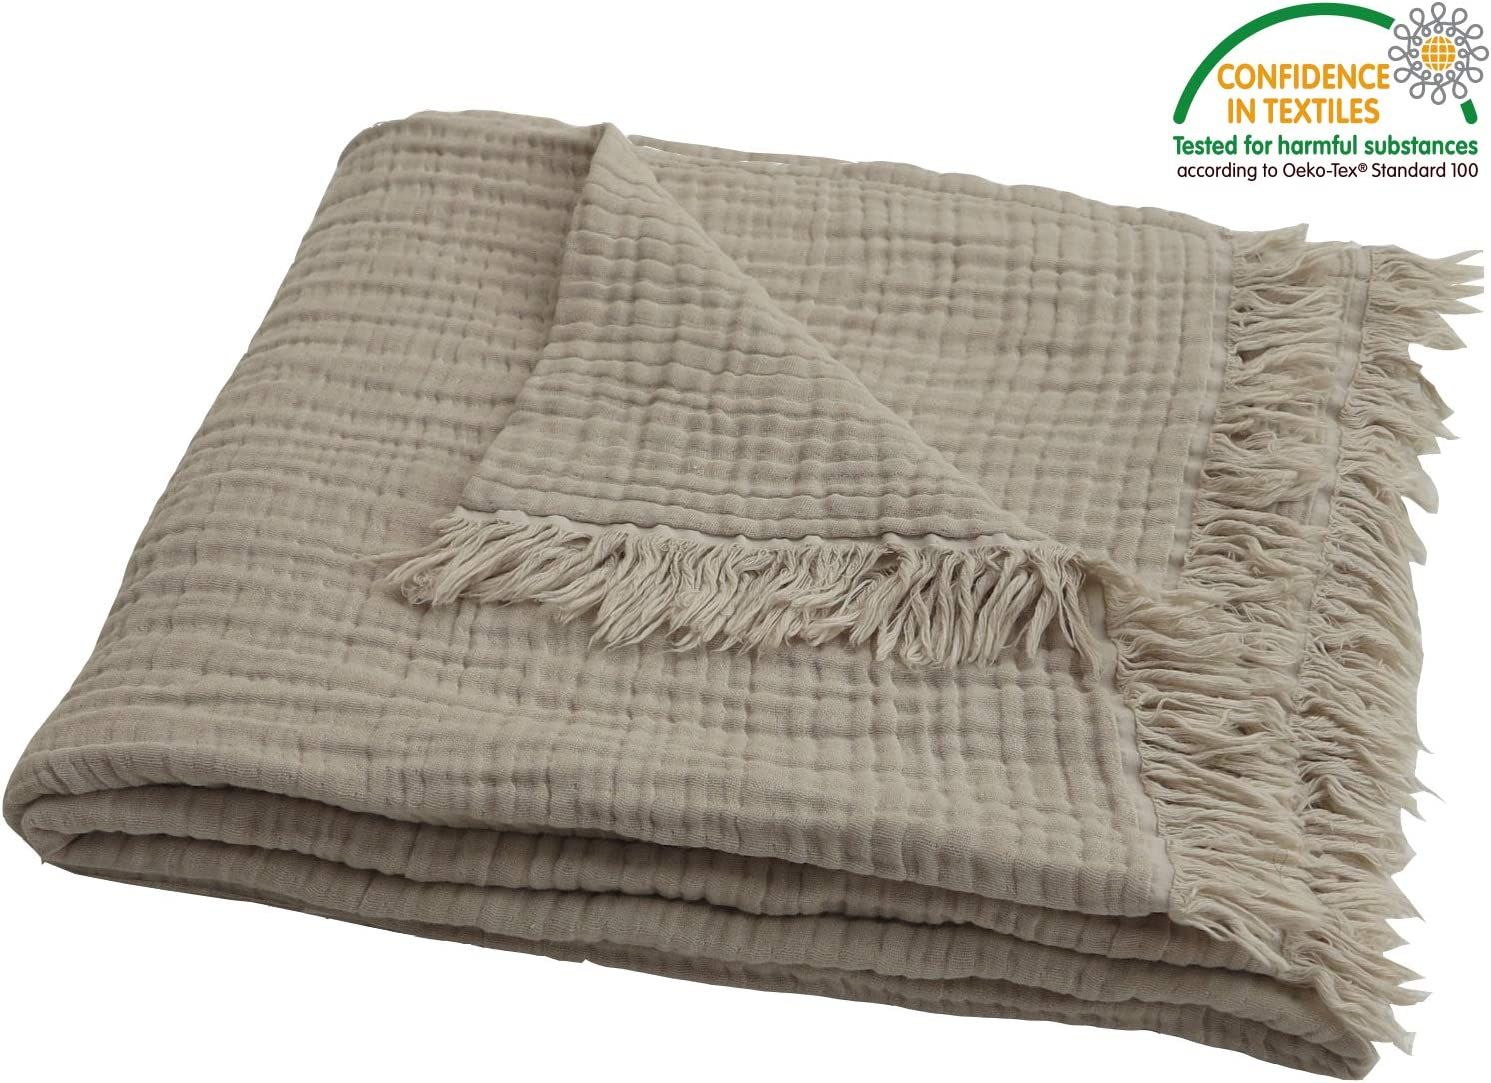 """100% Pre-Washed Organic Muslin Cotton Throw Blanket for Adults, Kids, Couch. Super Soft Breathablet, Warm, Cozy, Lightweight Bed Blanket, Everyday Use, All Season (55""""x60"""" inches) (Khakis)"""